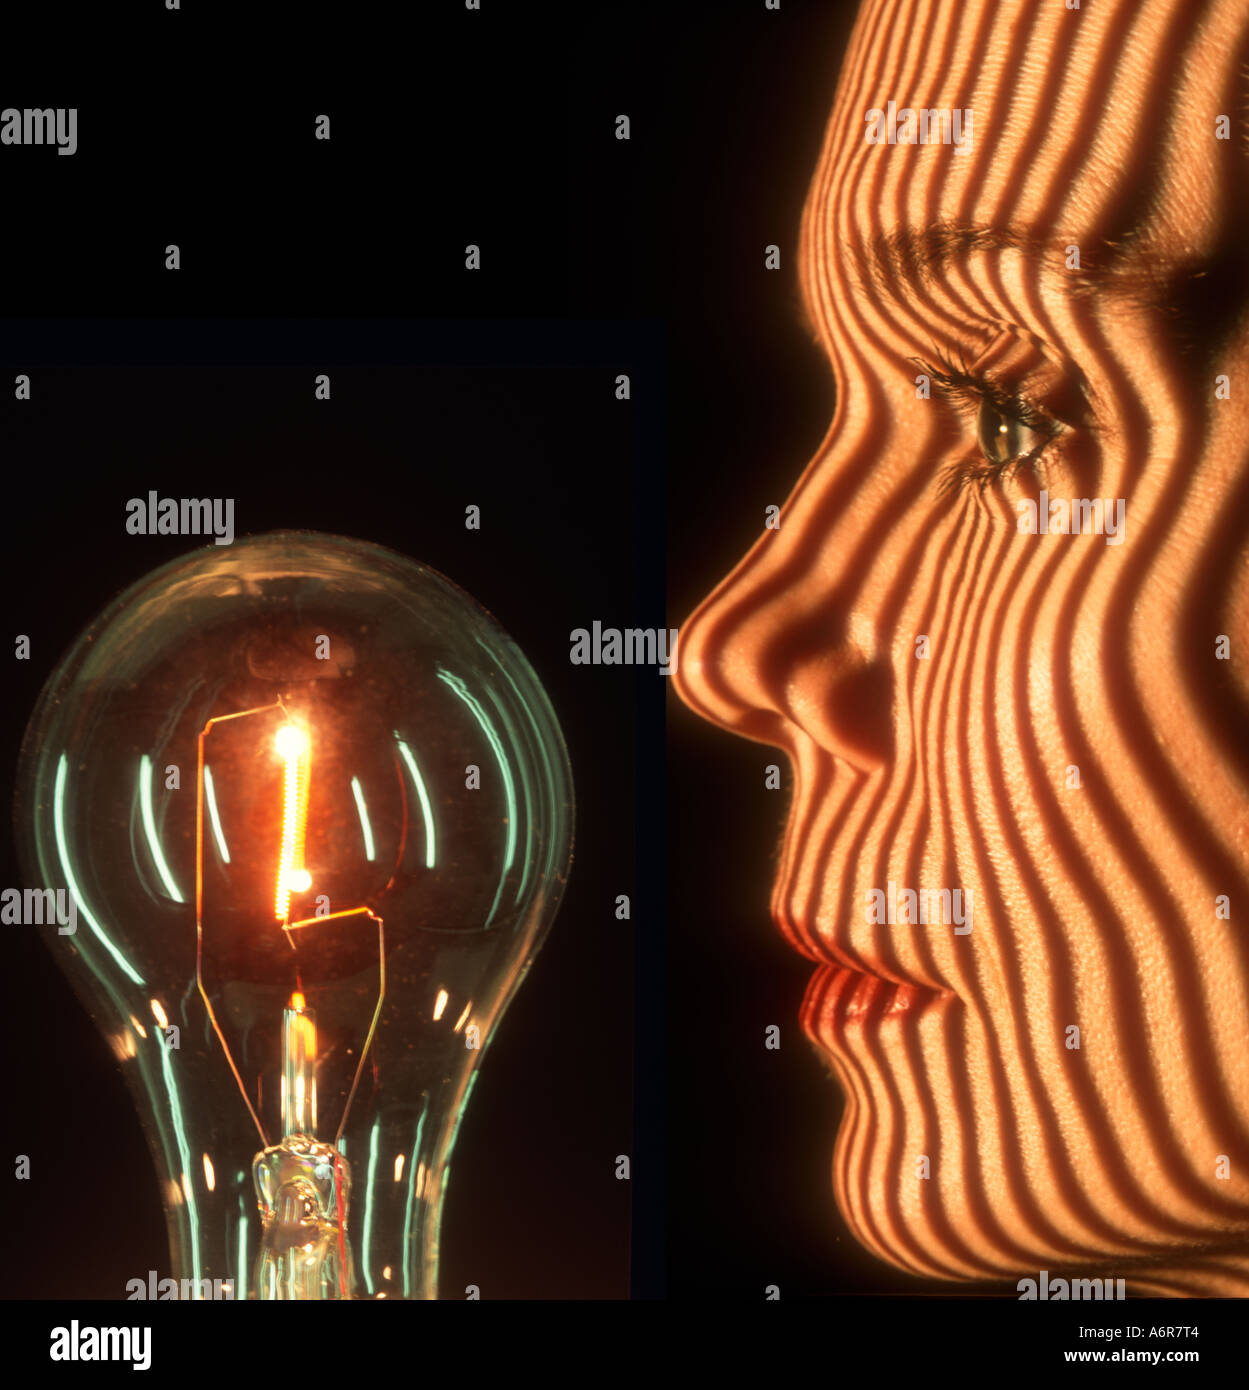 stripes projected on  face of a woman looking at light bulb abstract - Stock Image